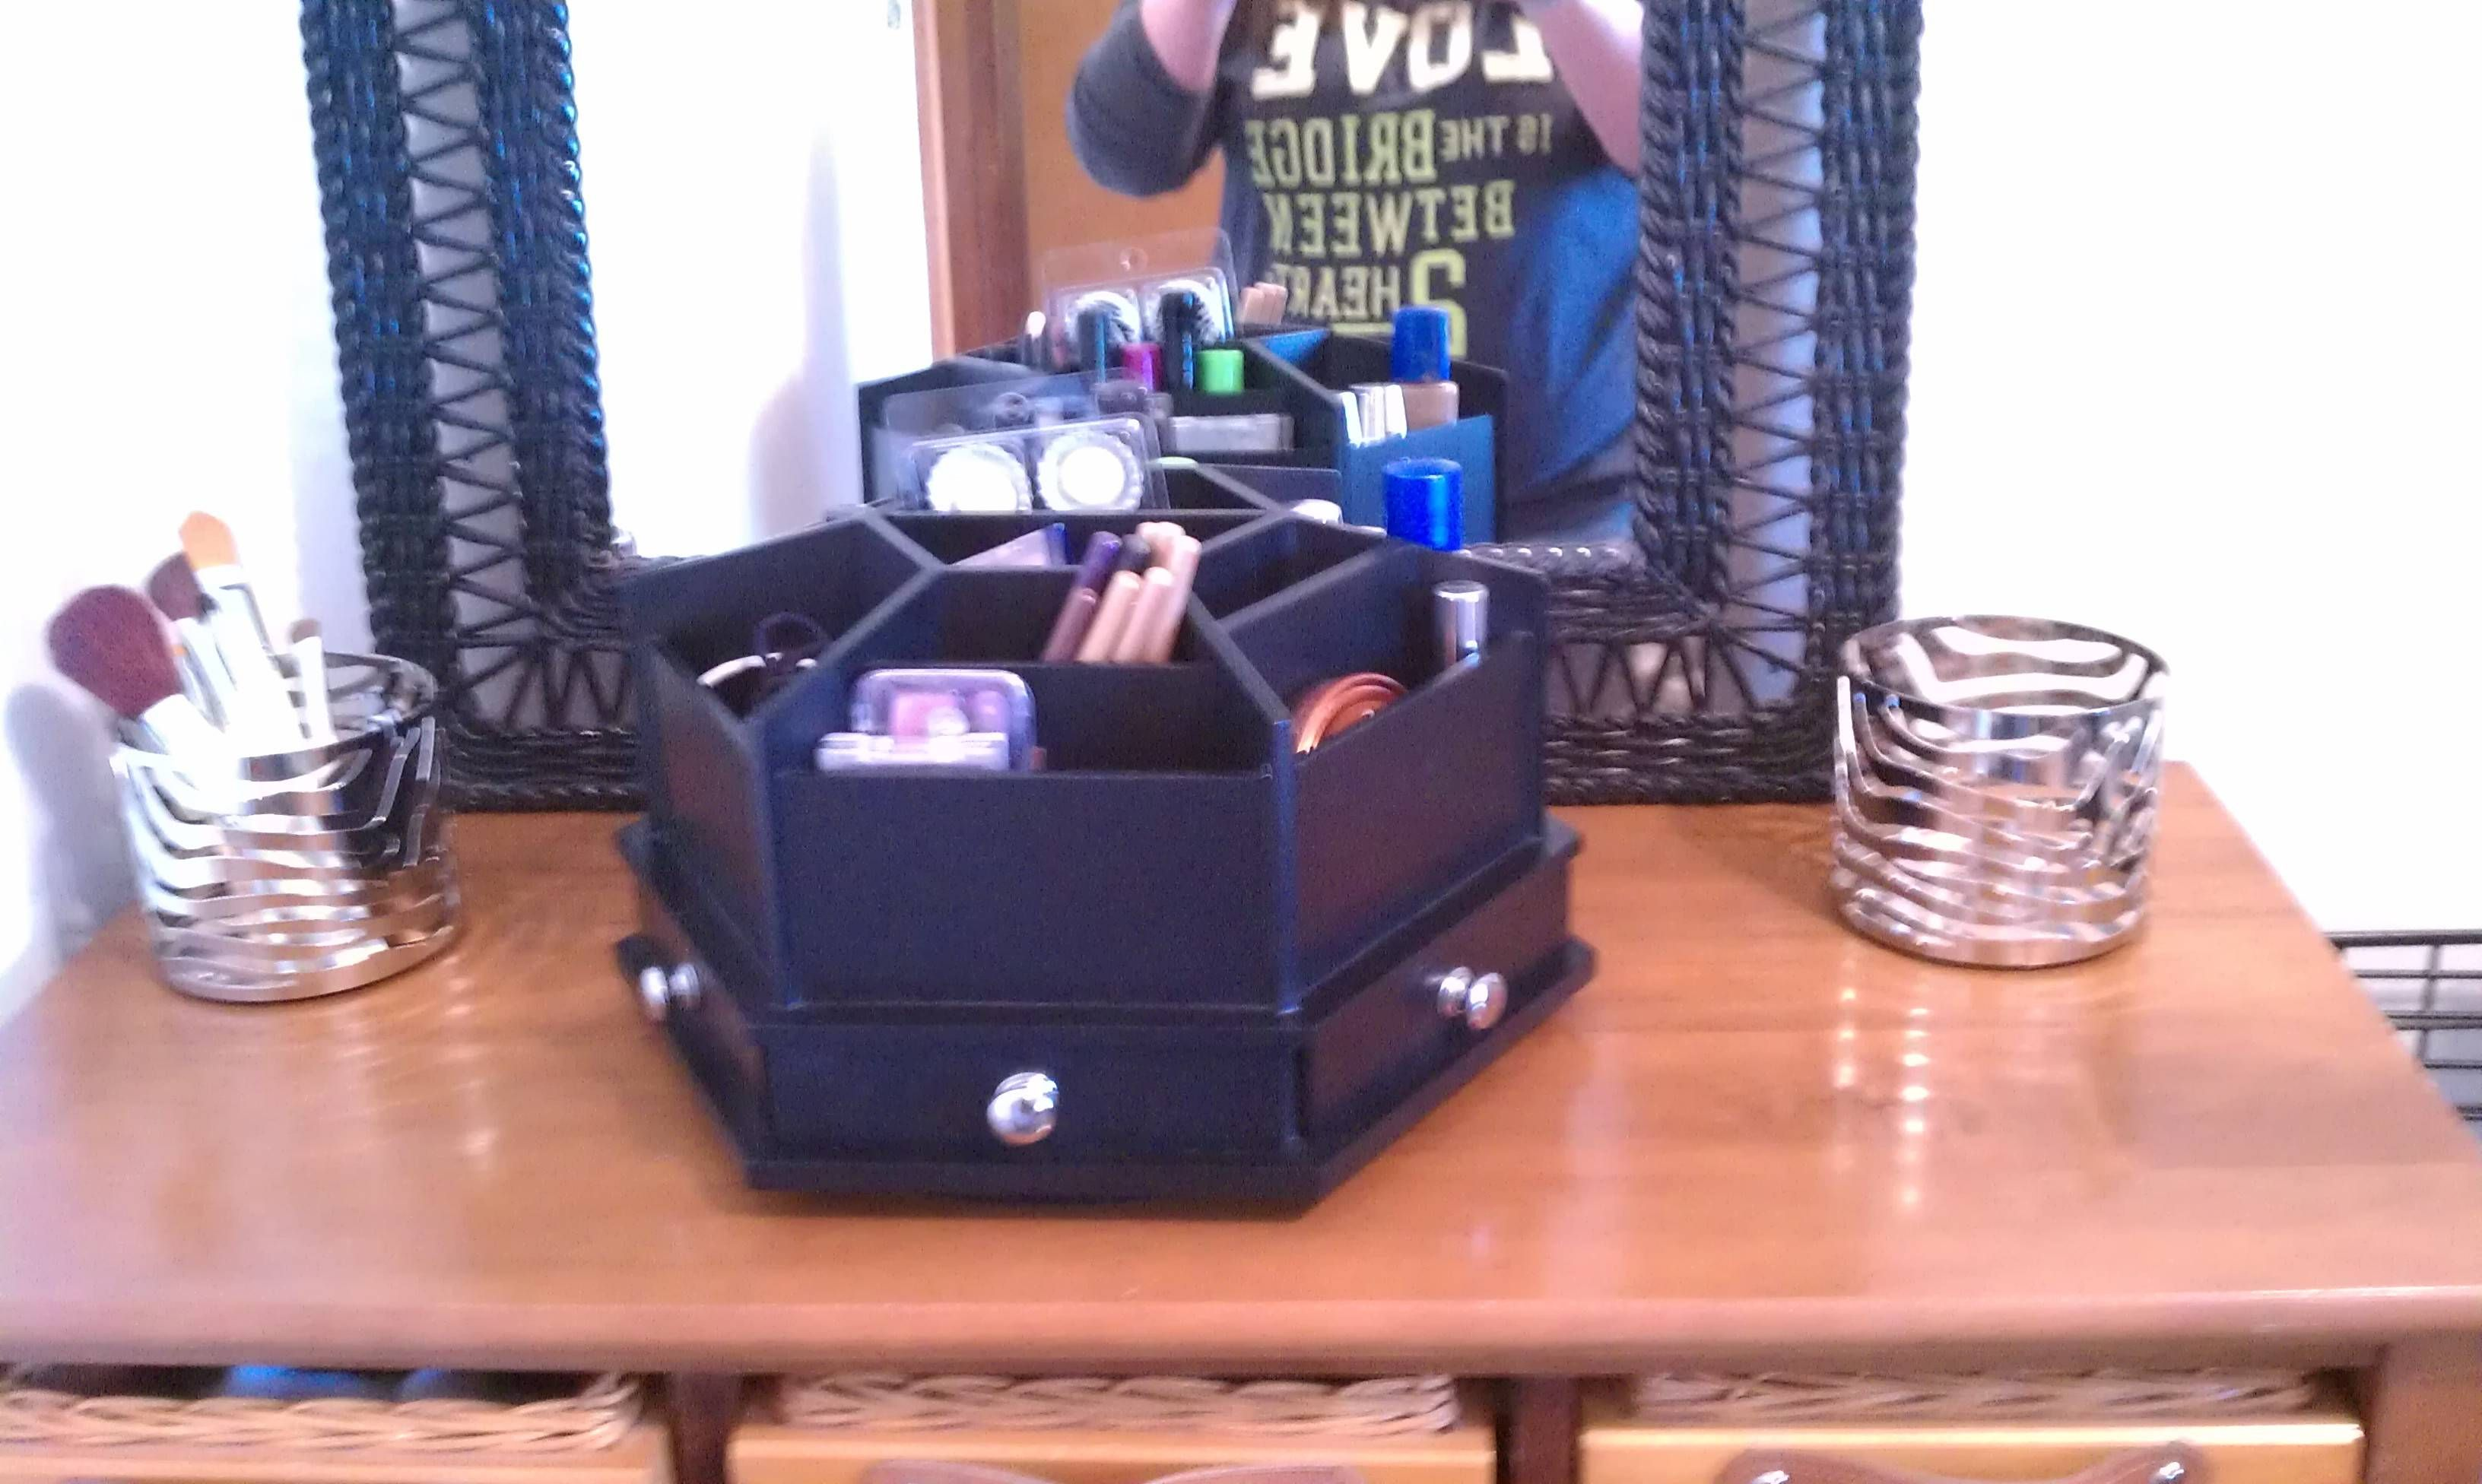 Hobby Lobby Craft Tool Organizer My New Make Up Caddy My Style